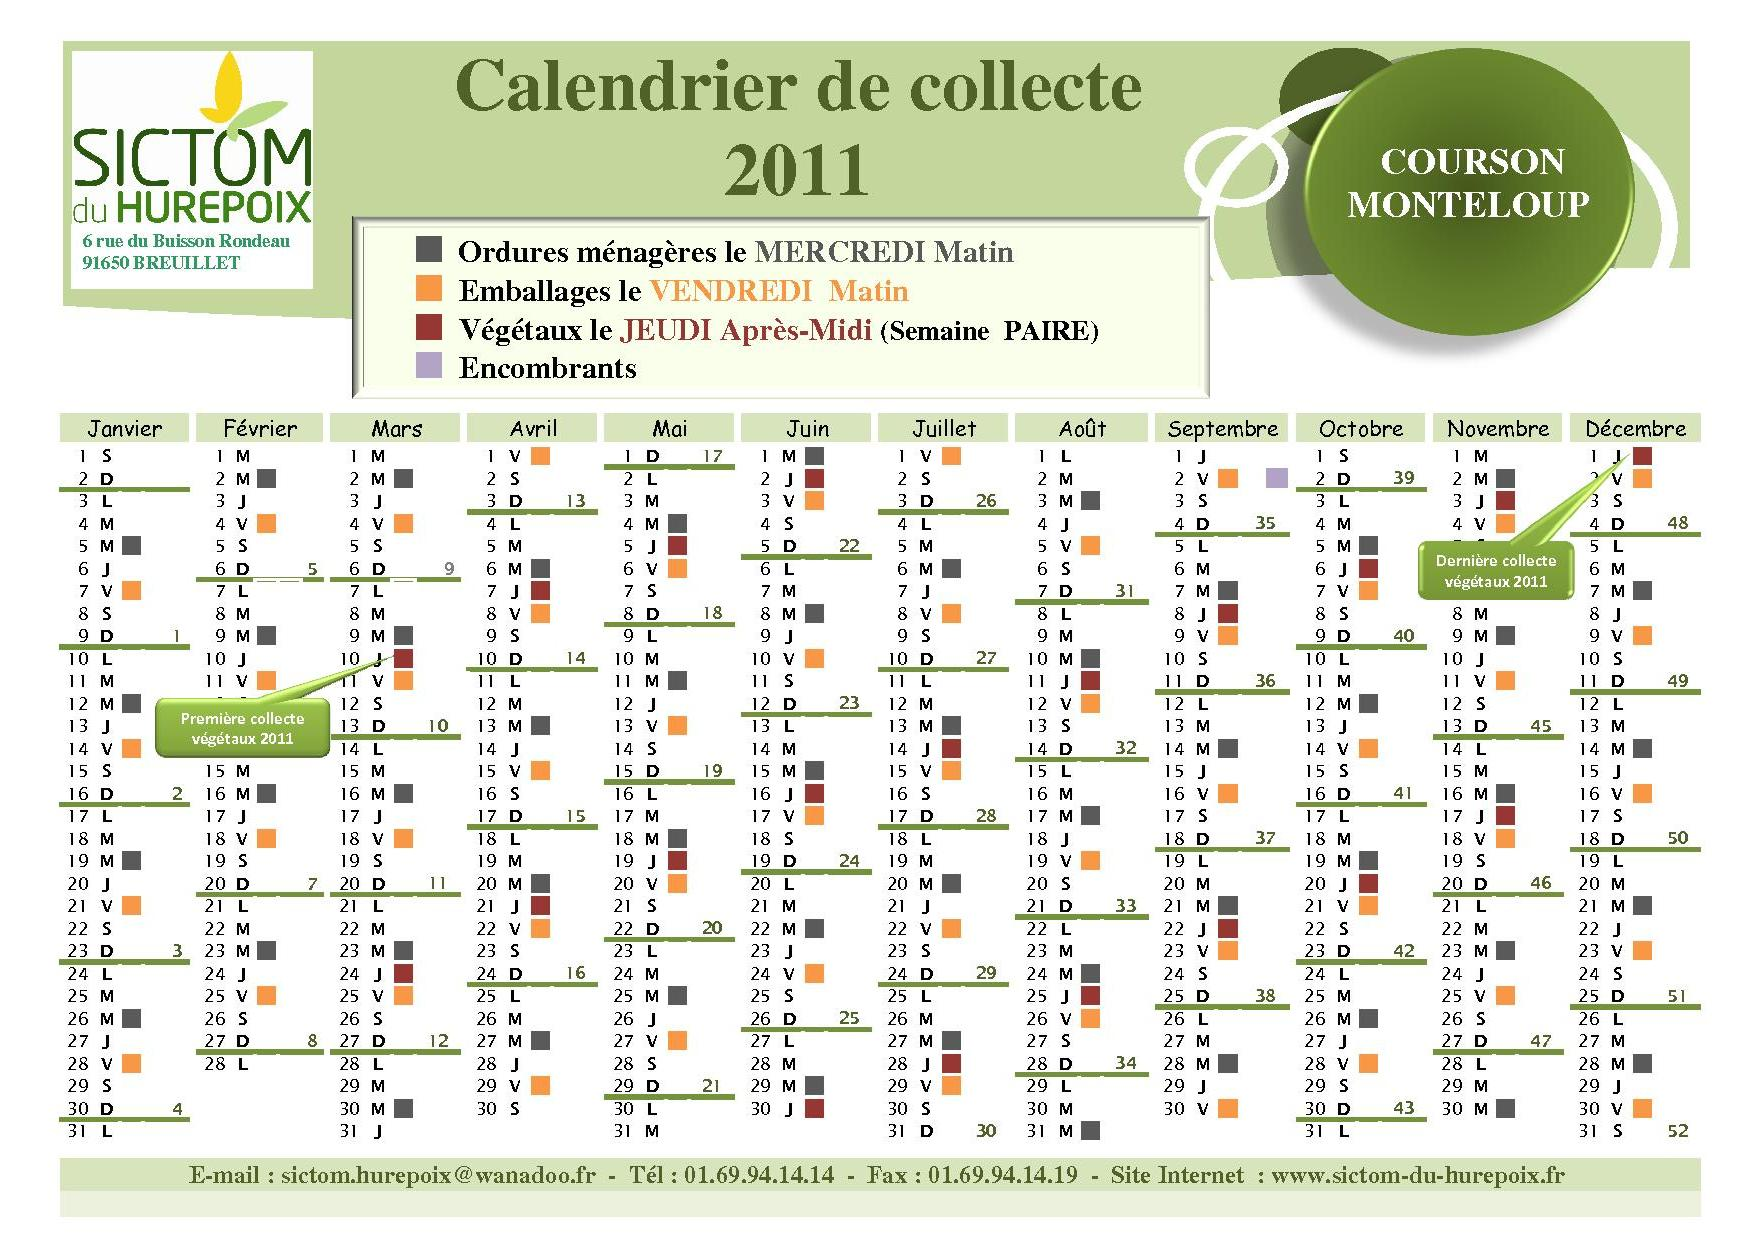 Calendrier Sictom.Index Of Files Courson Calendrier Sictom